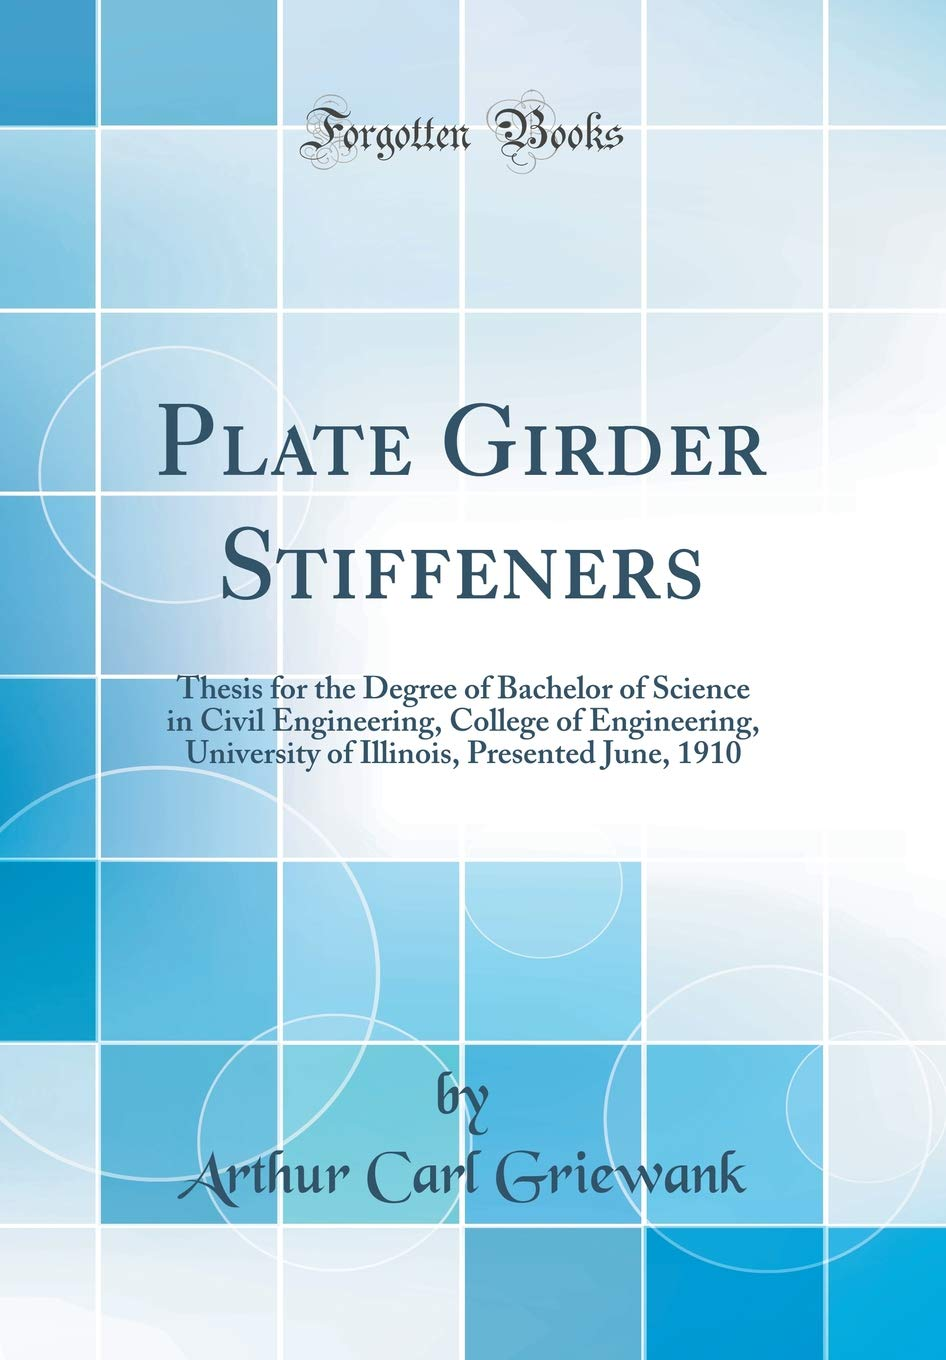 Plate Girder Stiffeners: Thesis for the Degree of Bachelor